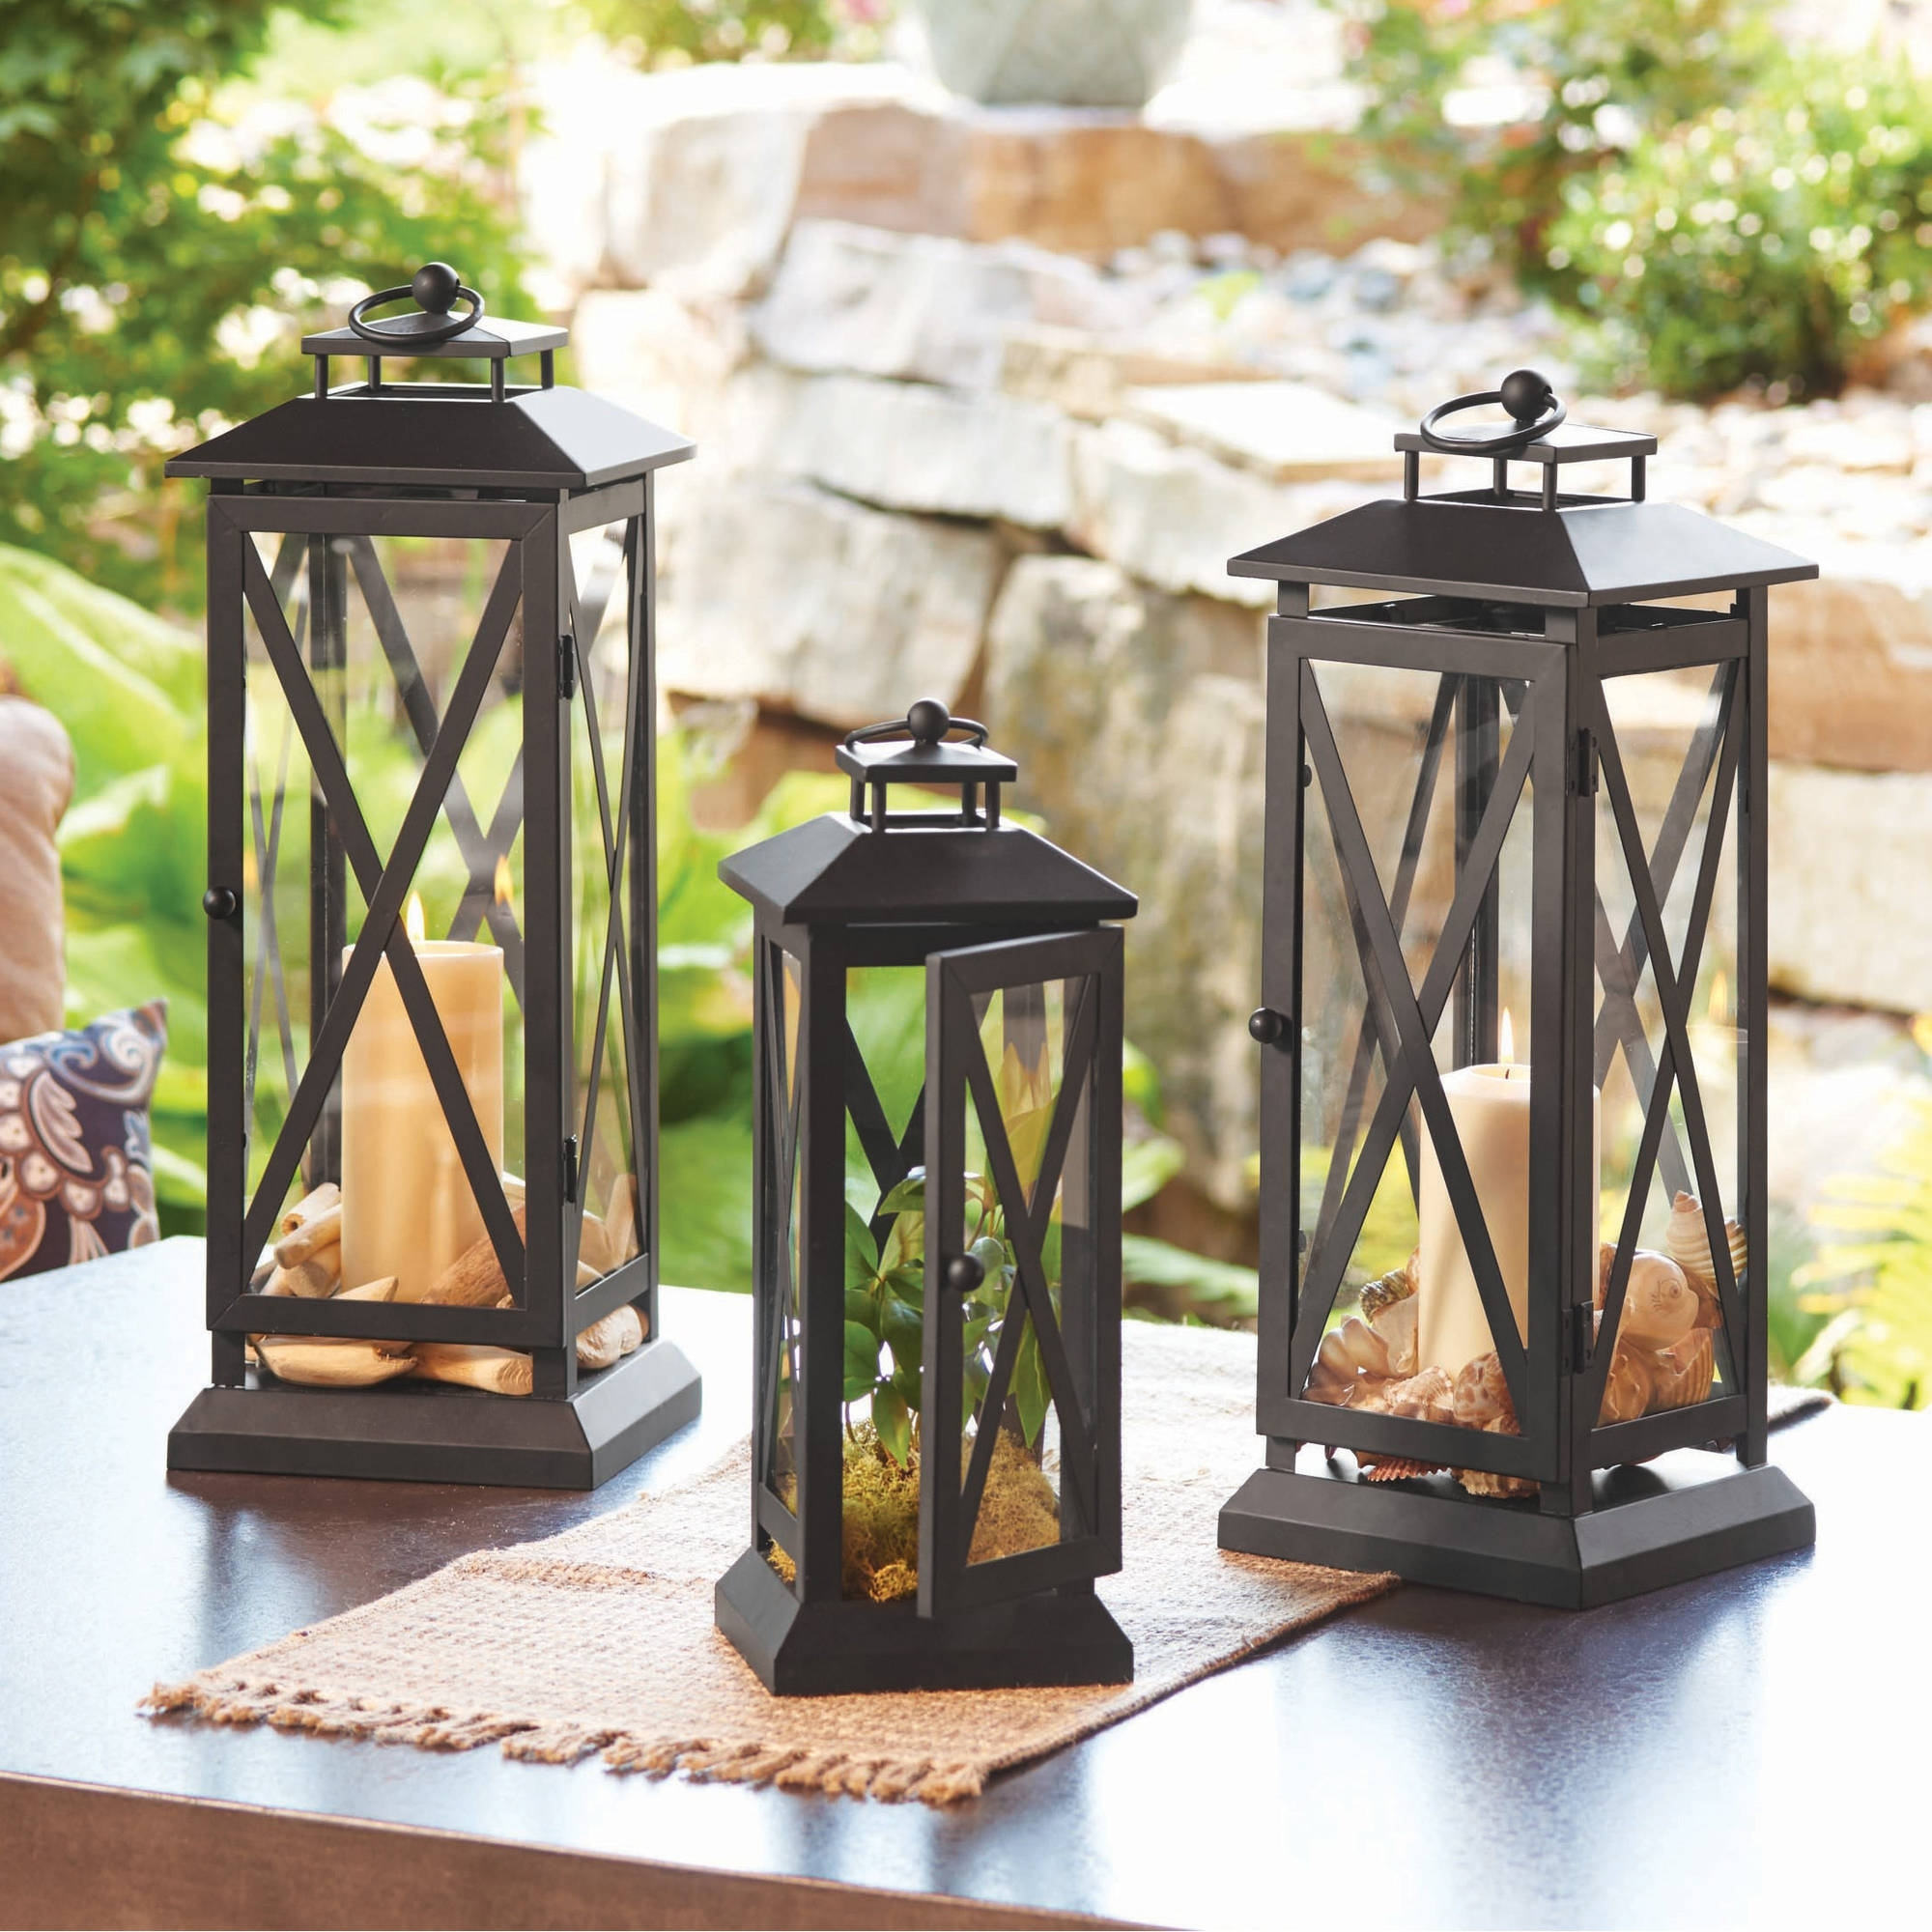 2019 Better Homes And Gardens Crossbar Metal Outdoor Lantern – Walmart With Regard To Quality Outdoor Lanterns (View 1 of 20)